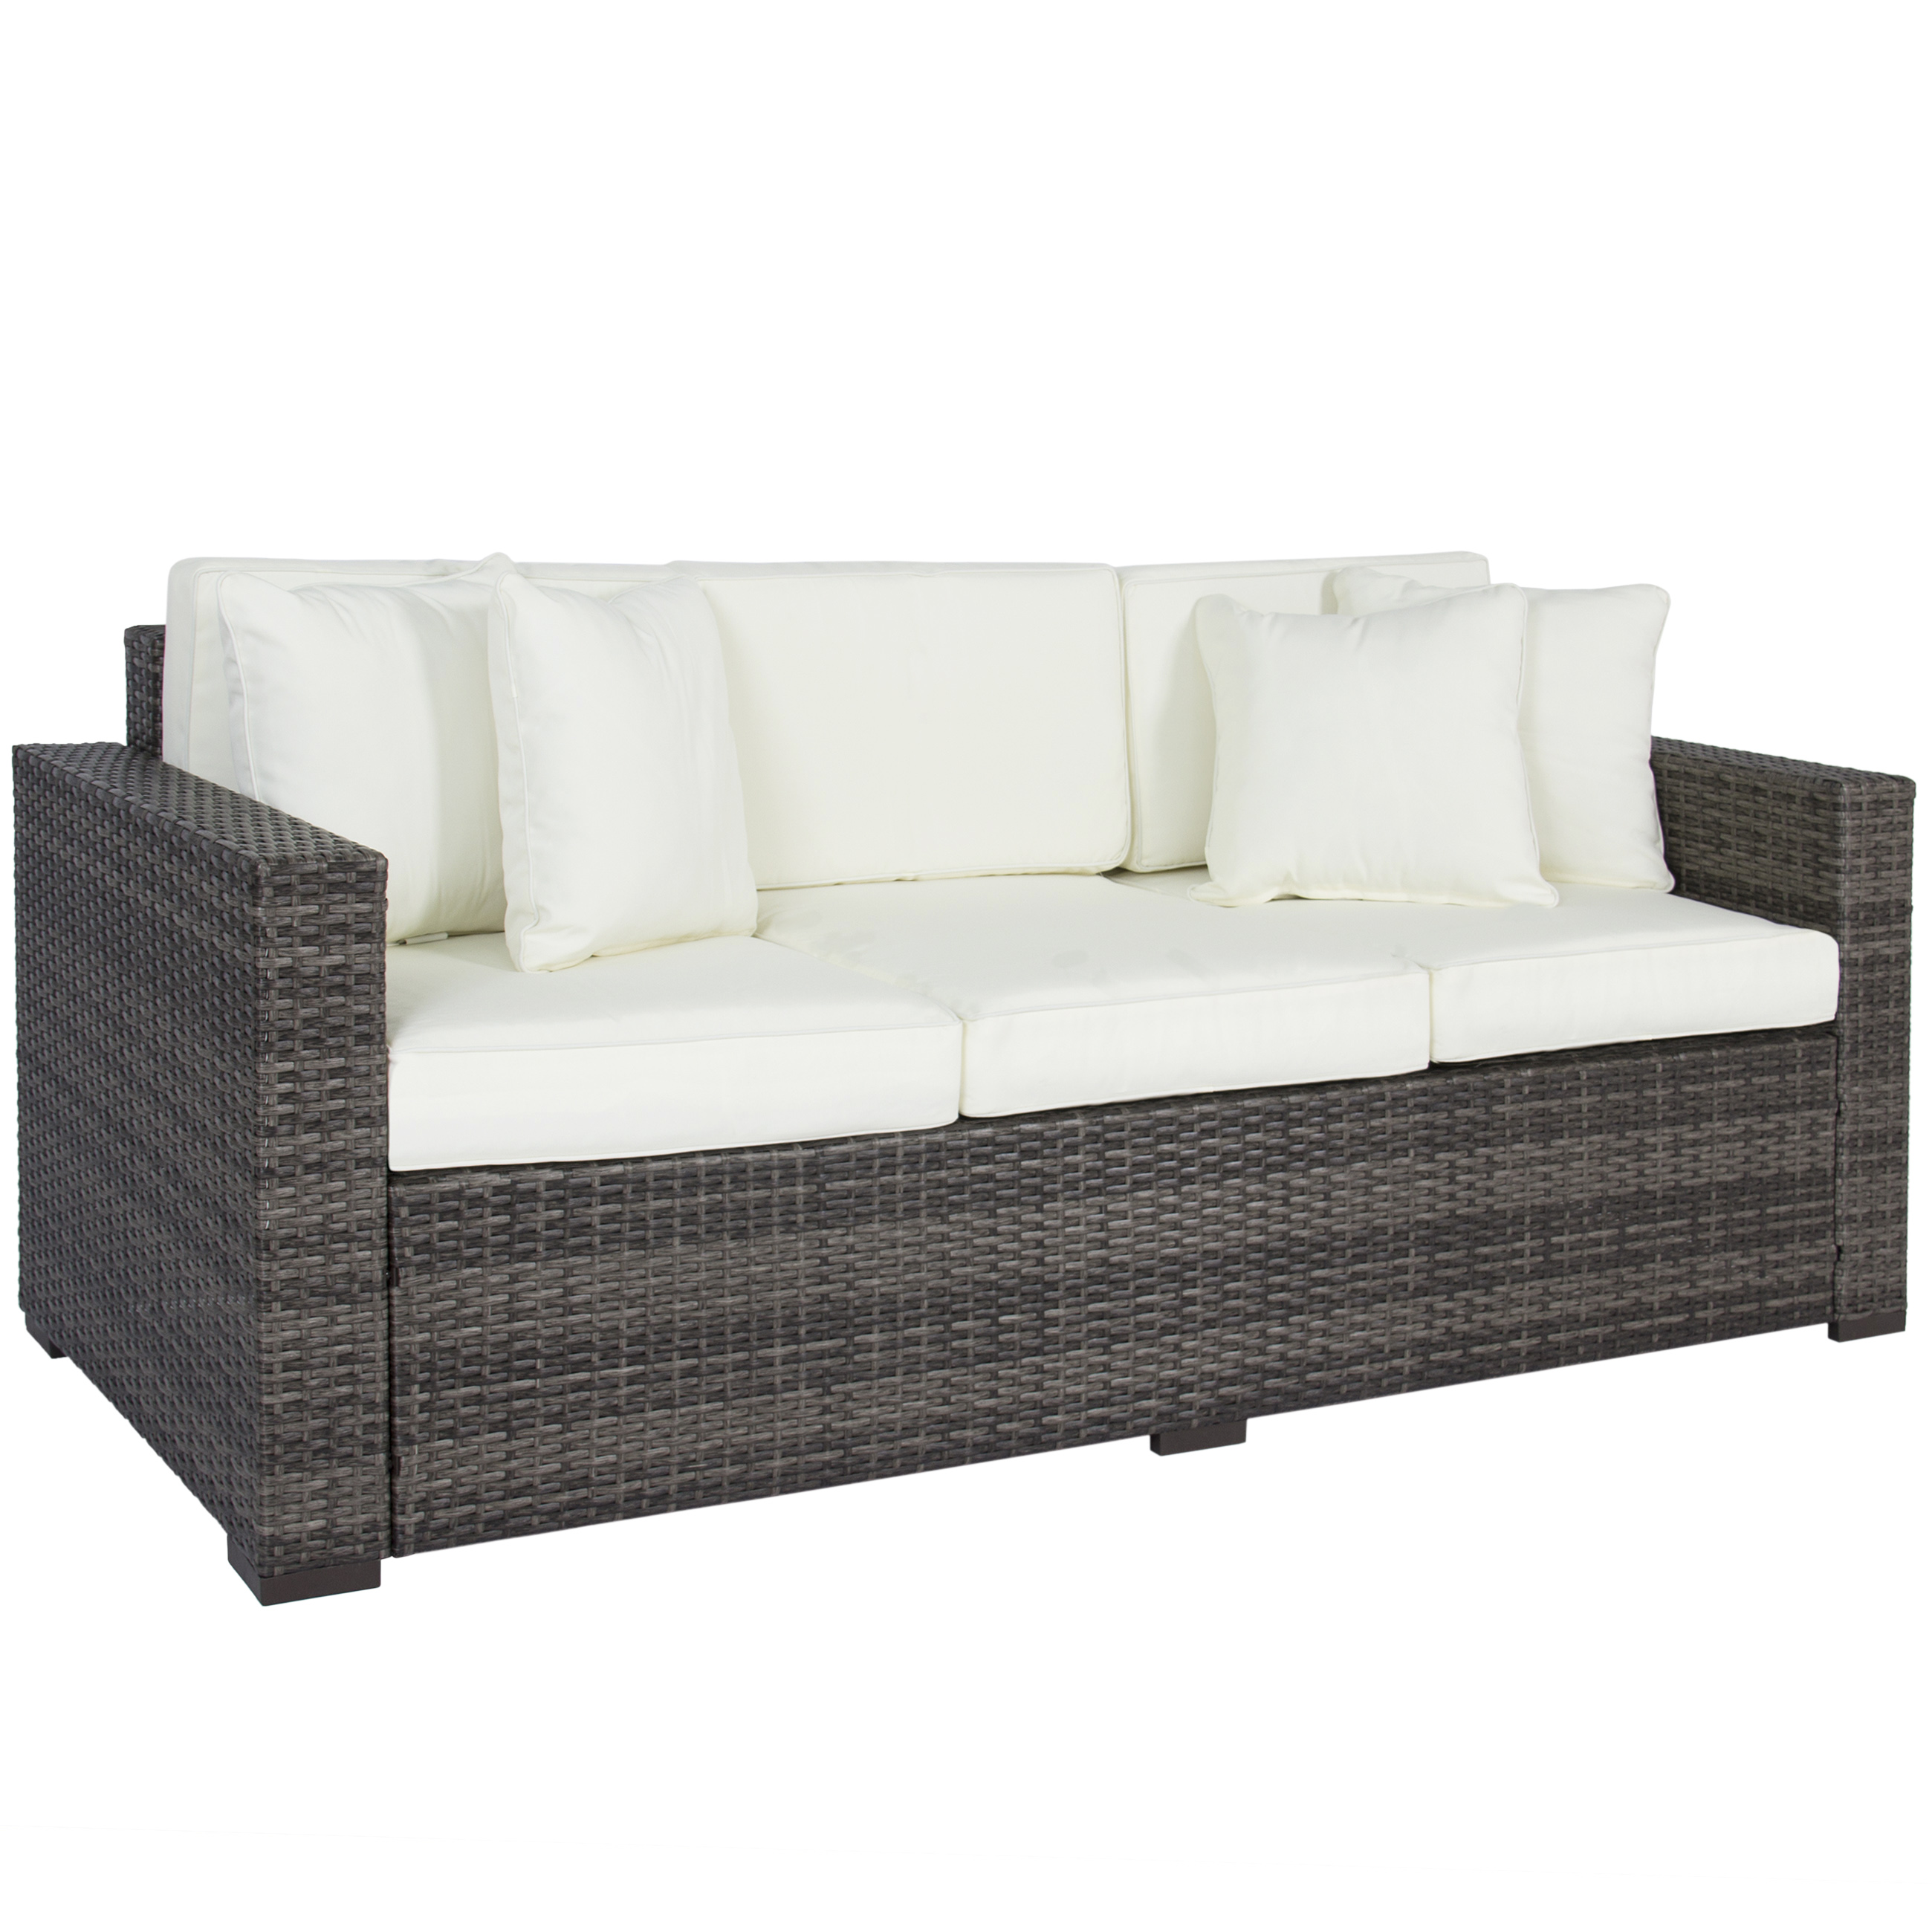 Best Choice Products 3 Seat Outdoor Wicker Sofa Couch Patio Furniture W Steel Frame And Removable Cushions Brown